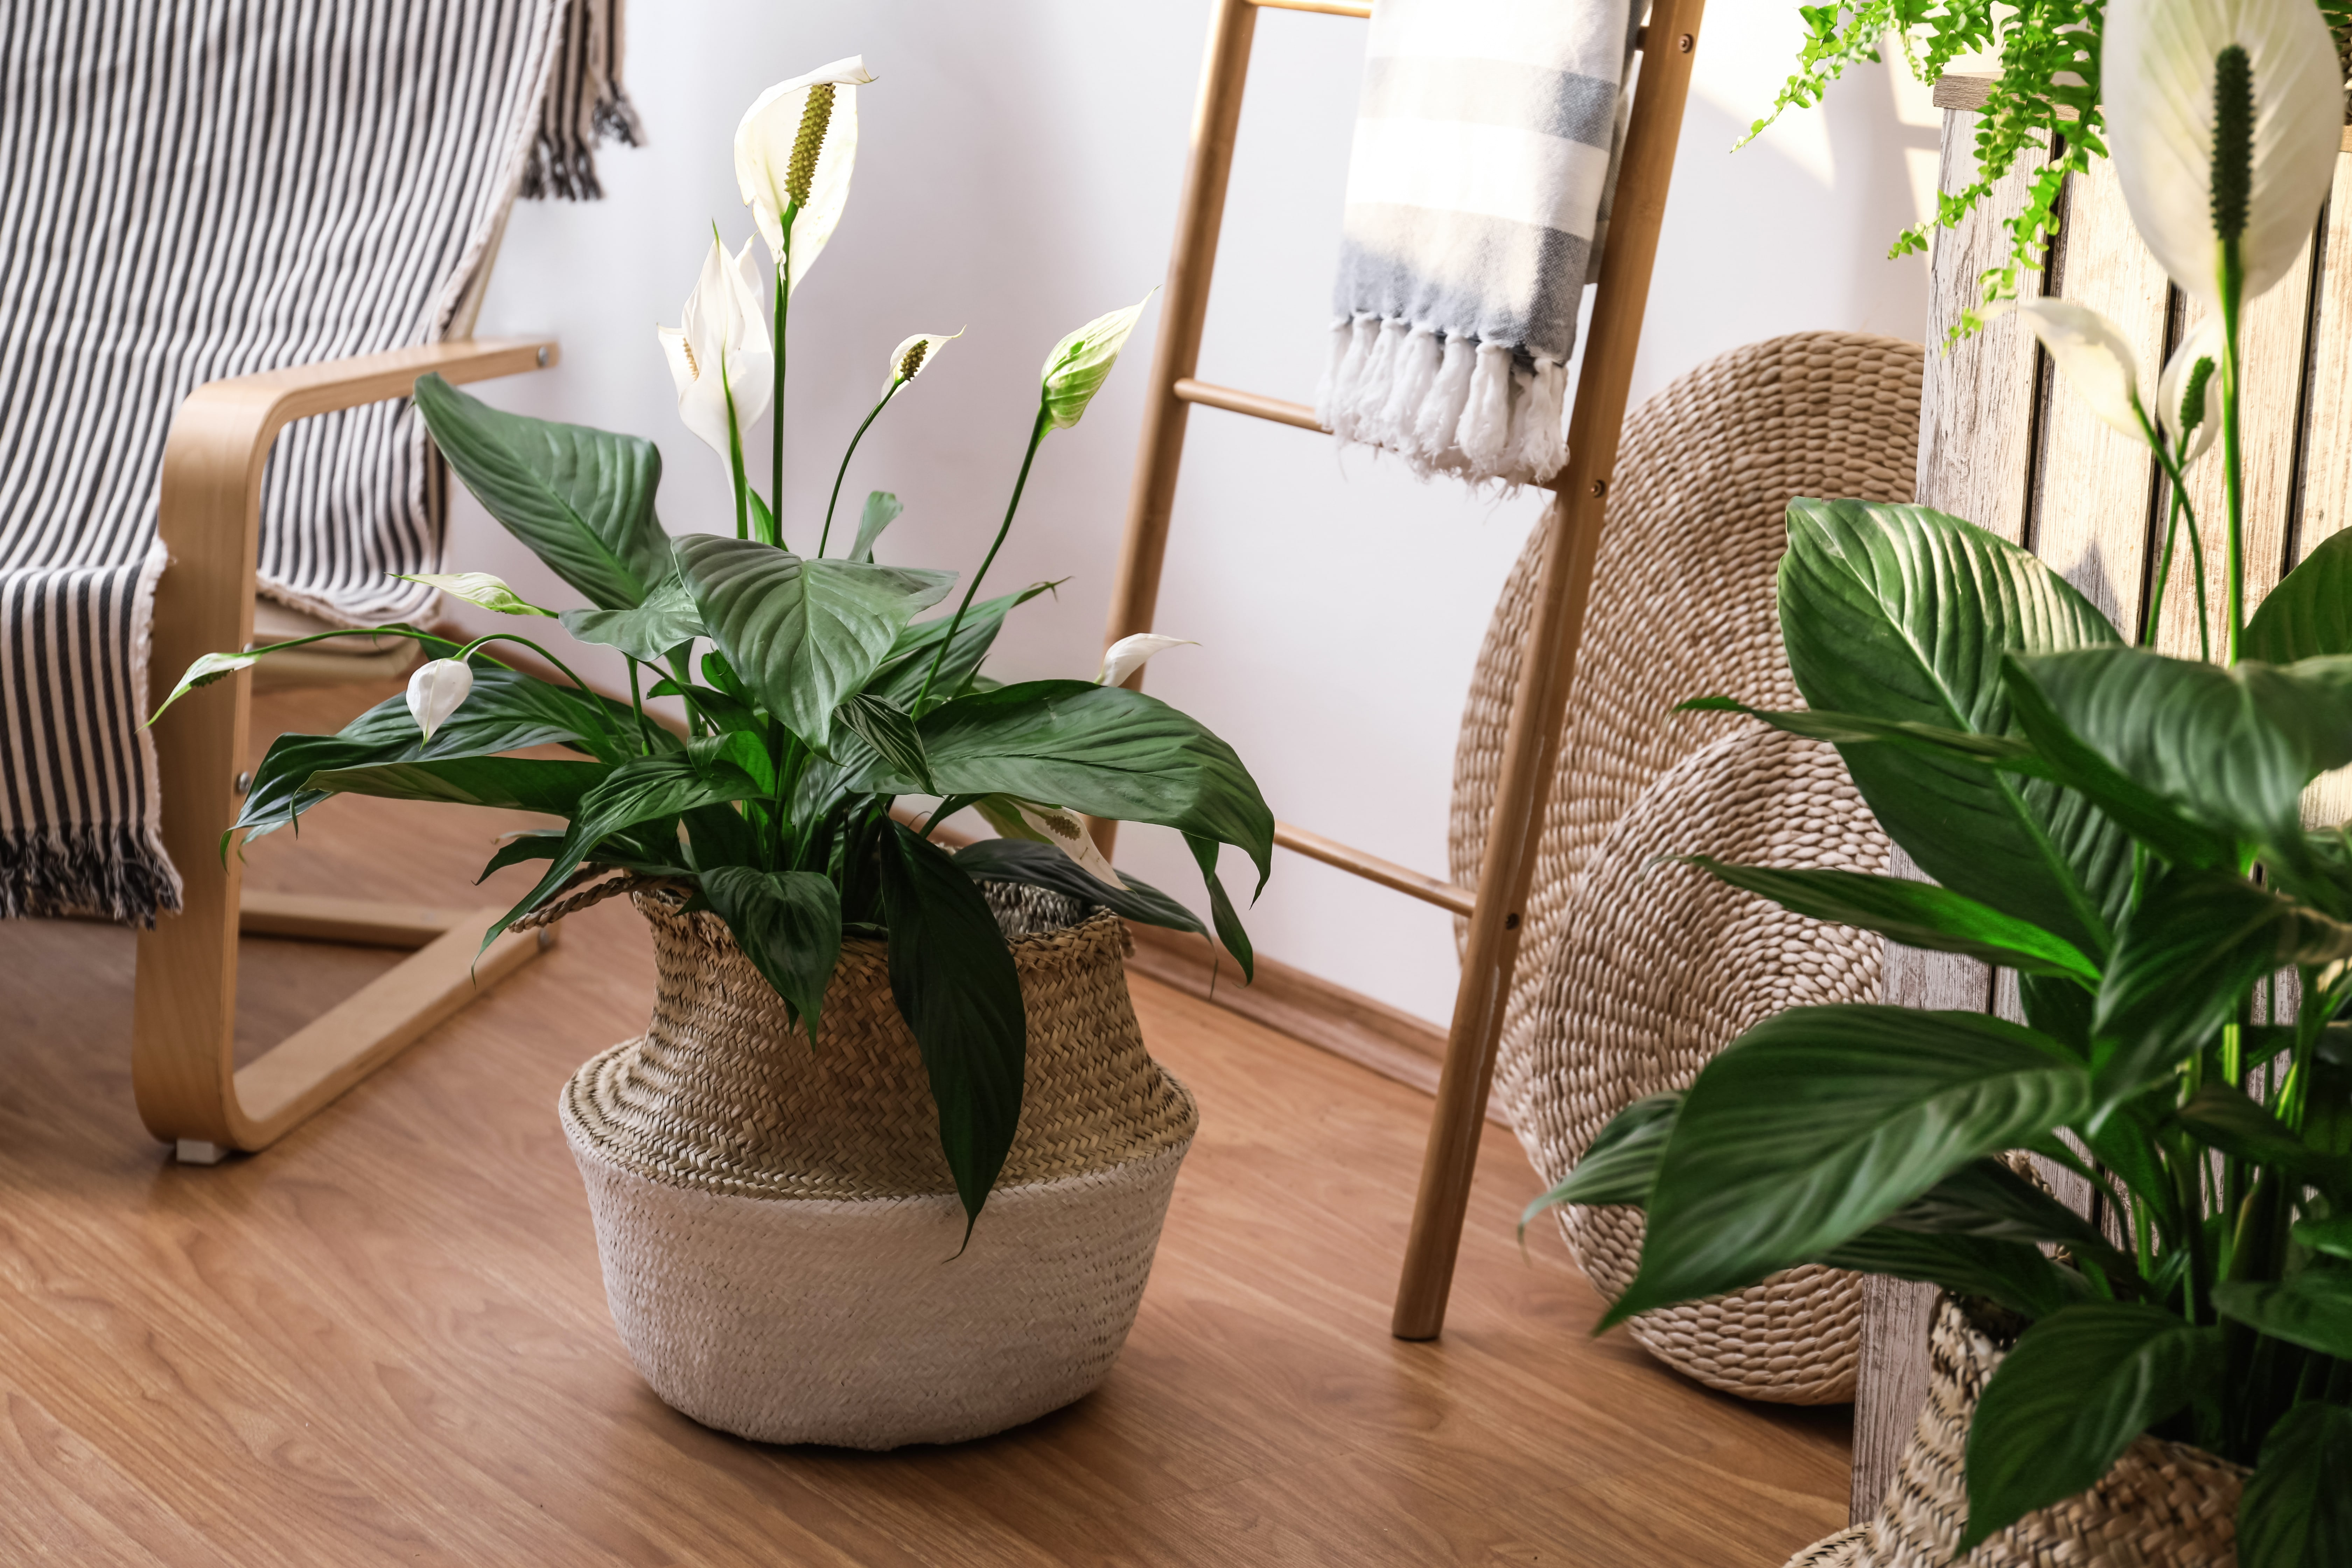 Beautiful potted plants in stylish room interior. Design elements